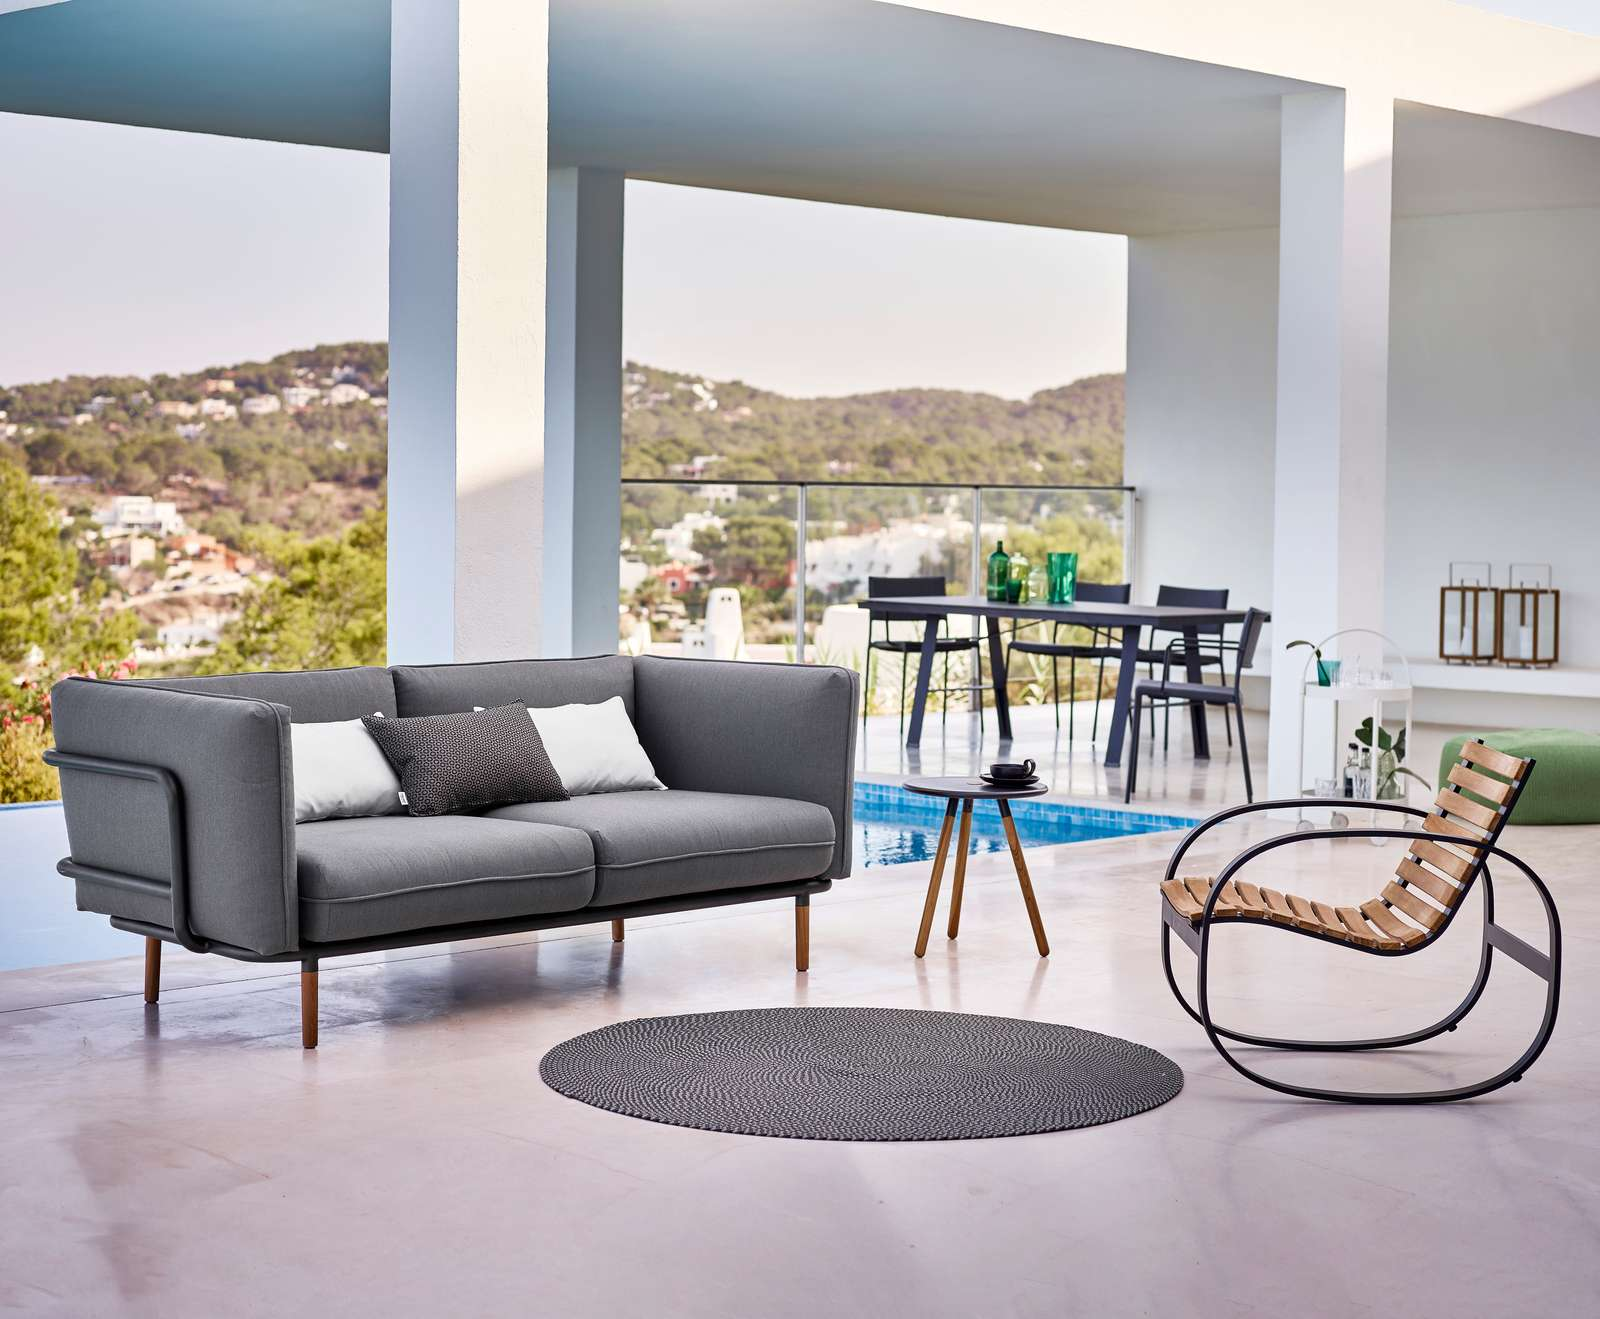 Urban 3 Seater Sofa By Cane Line Couture Outdoor